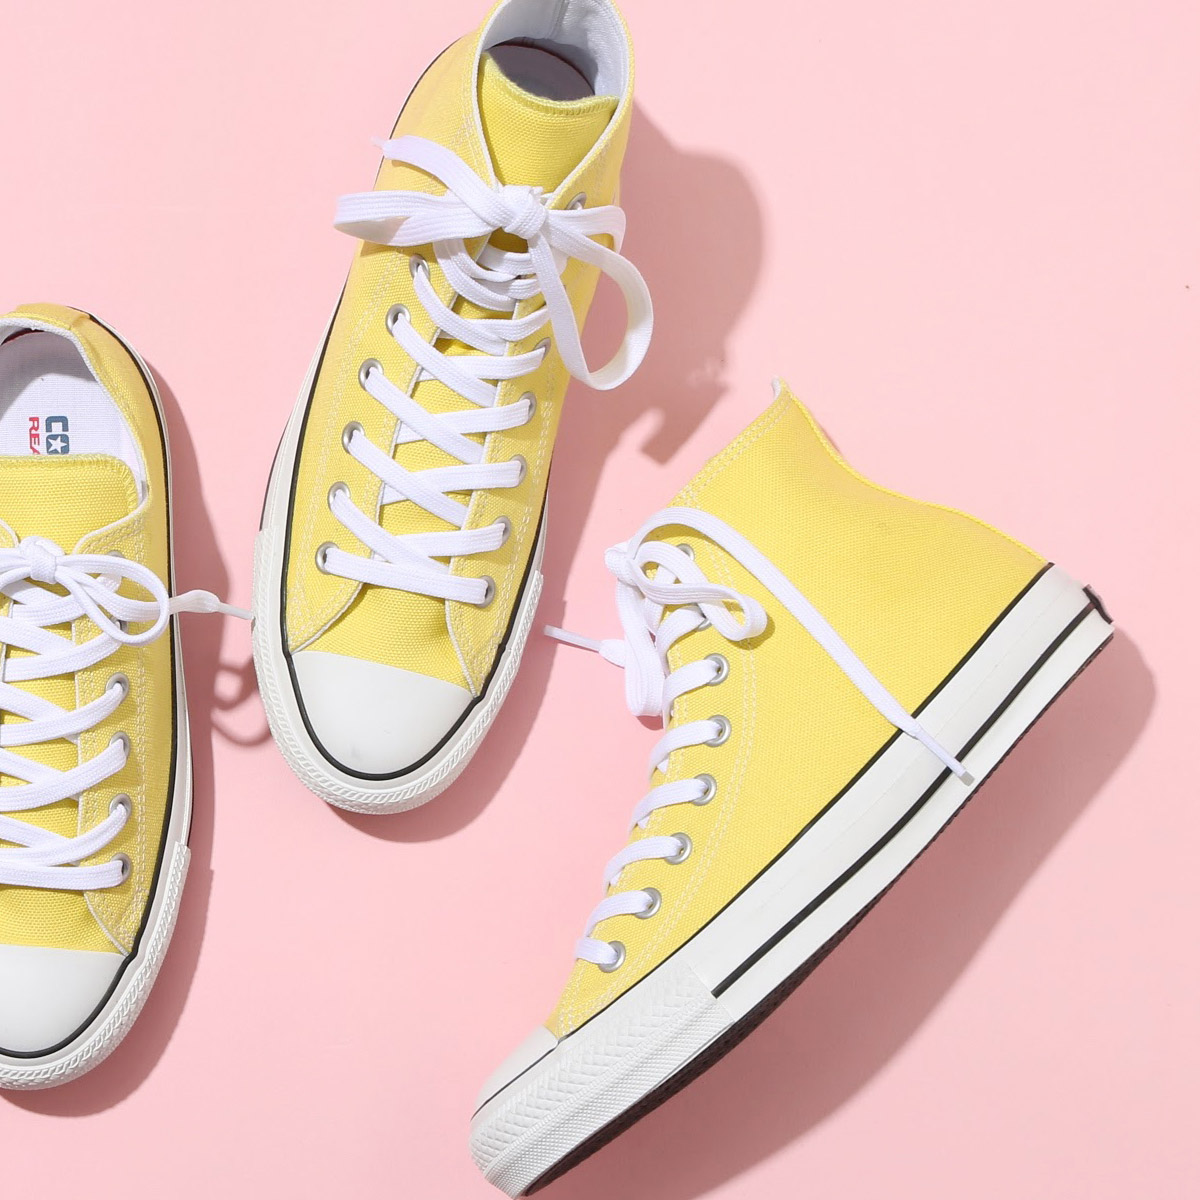 CONVERSE ALL STAR 100 COLORS HI (Converse all stars 100 colors high) (lemon) 17SP I